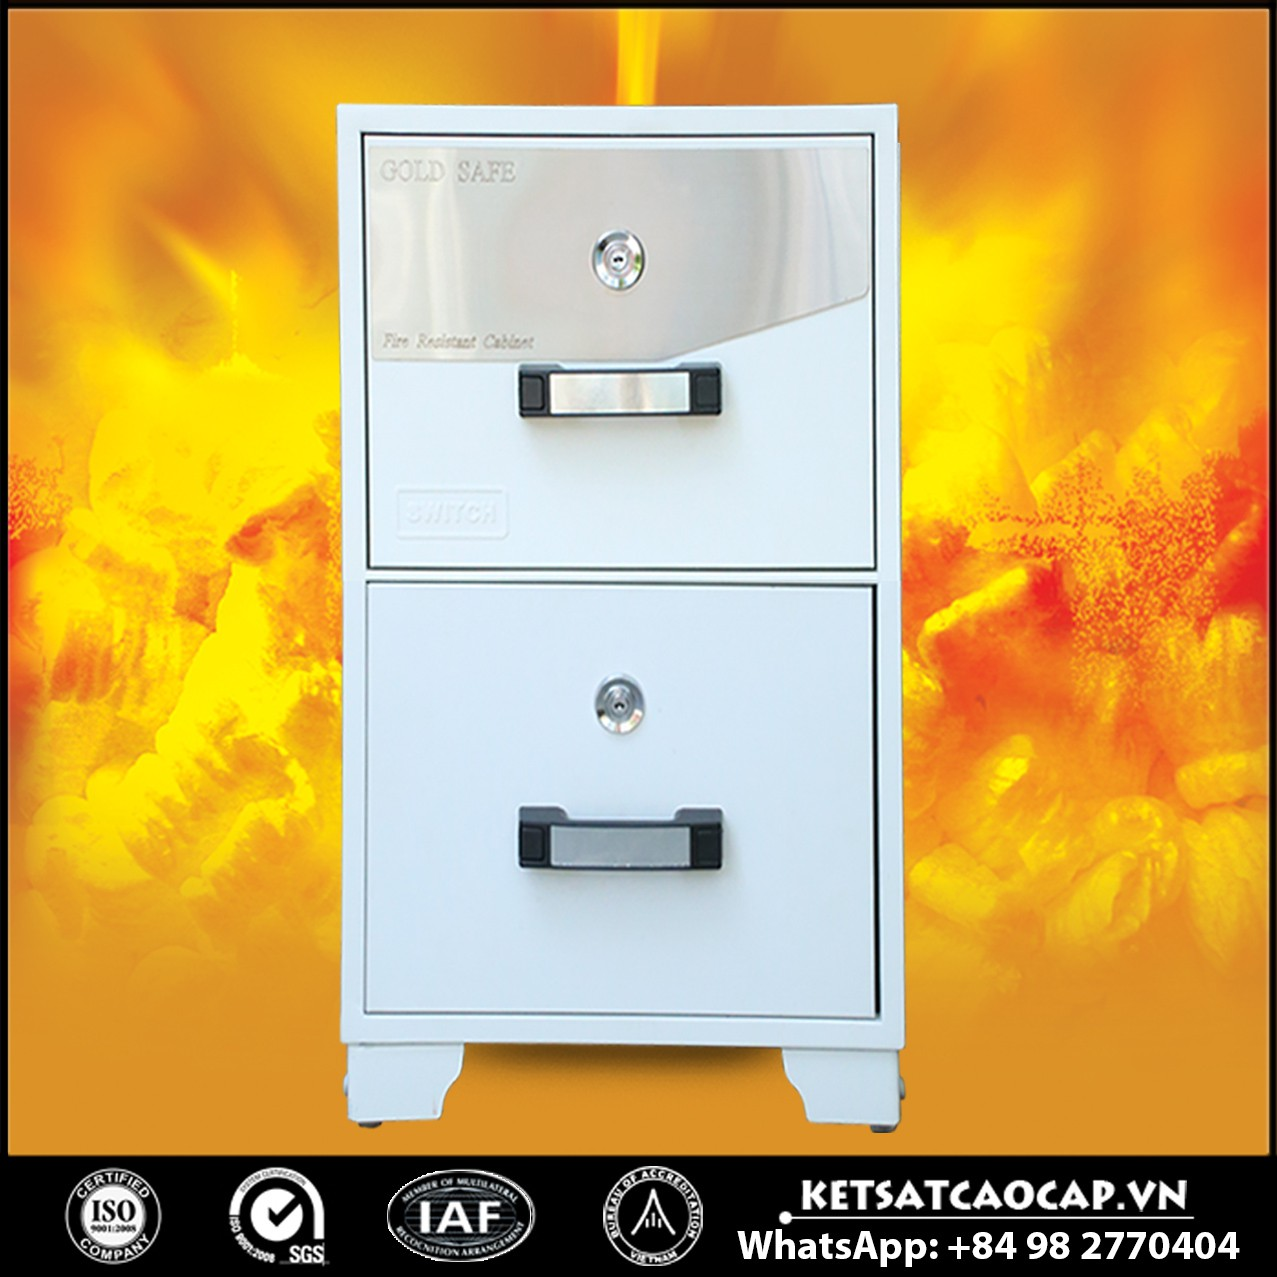 Fireproof Cabinets products for sale